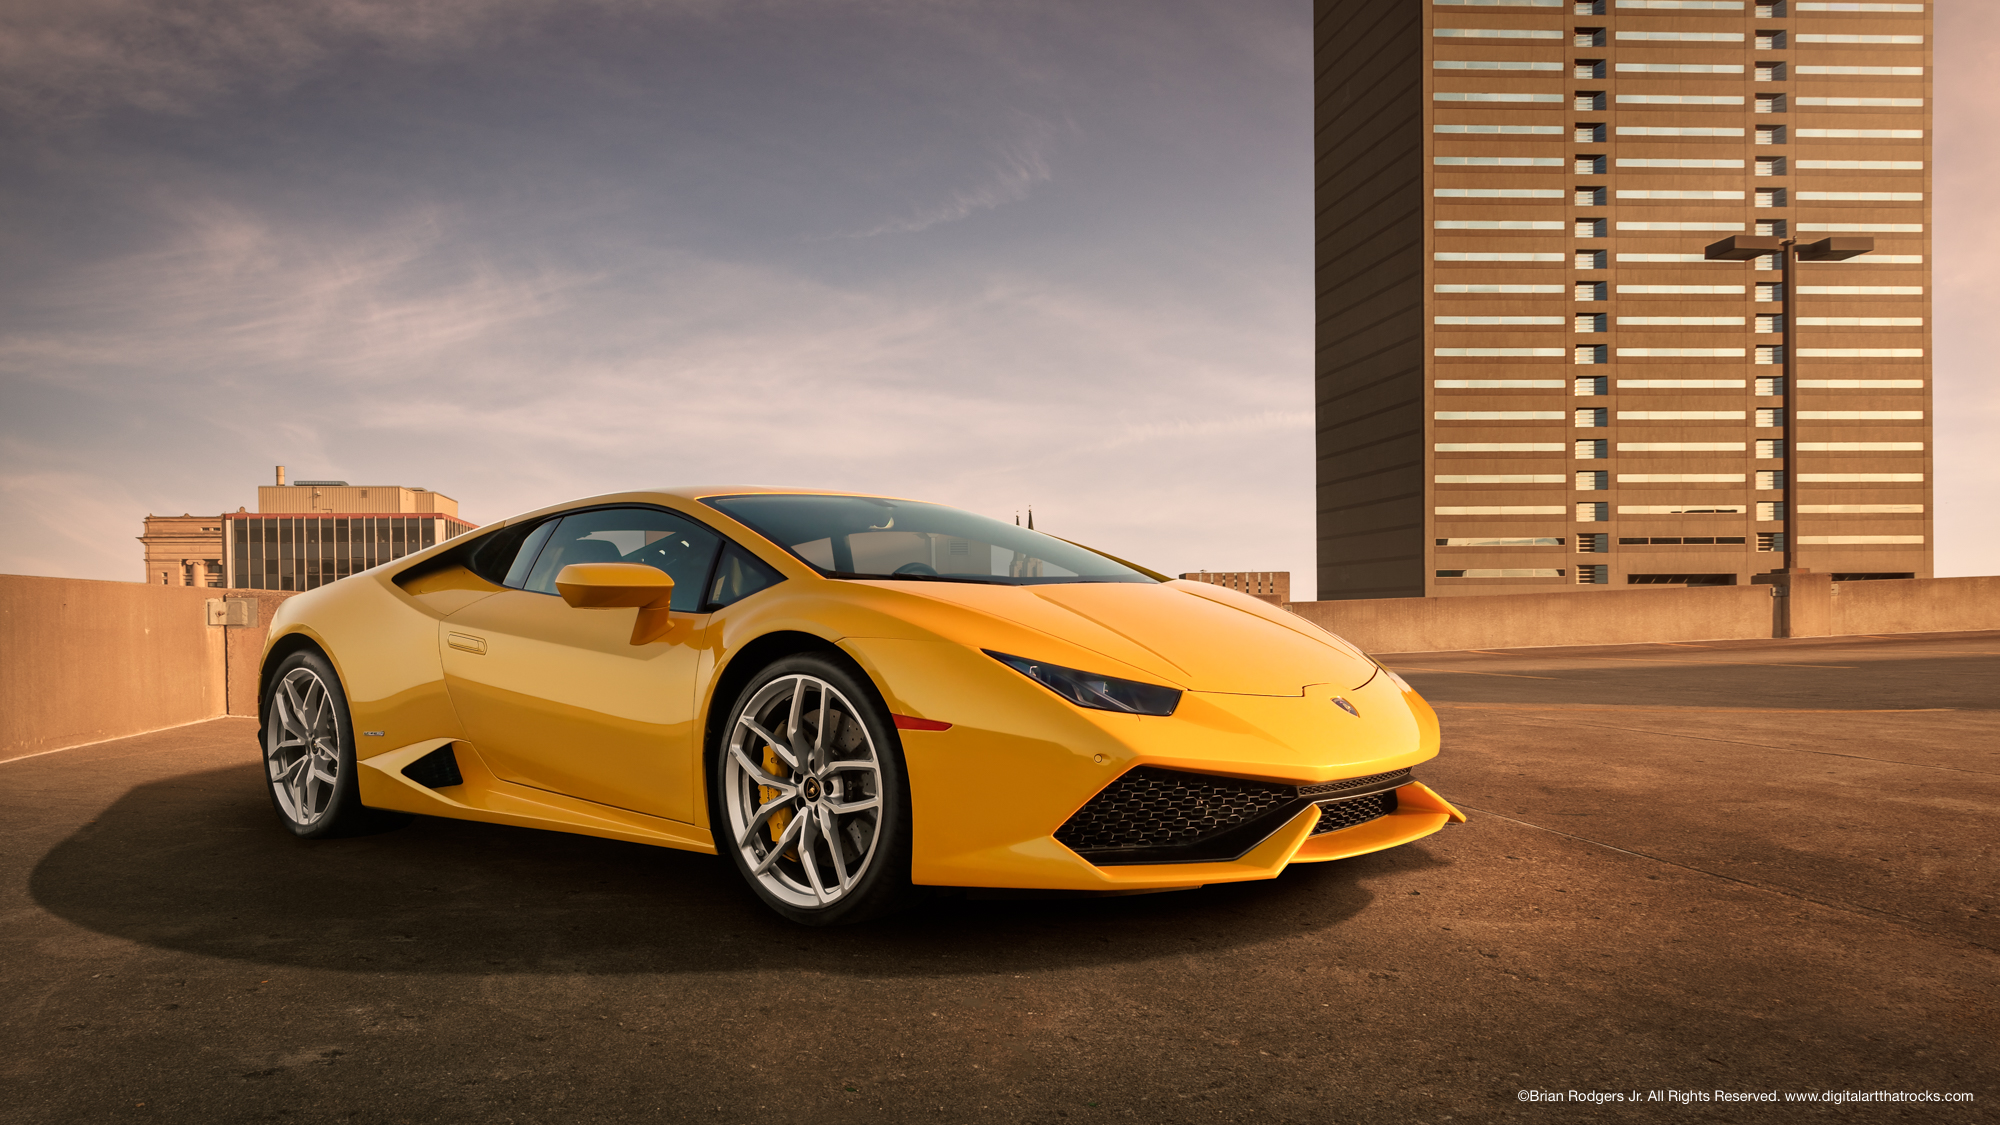 Click on this automotive image to view my automotive photography gallery